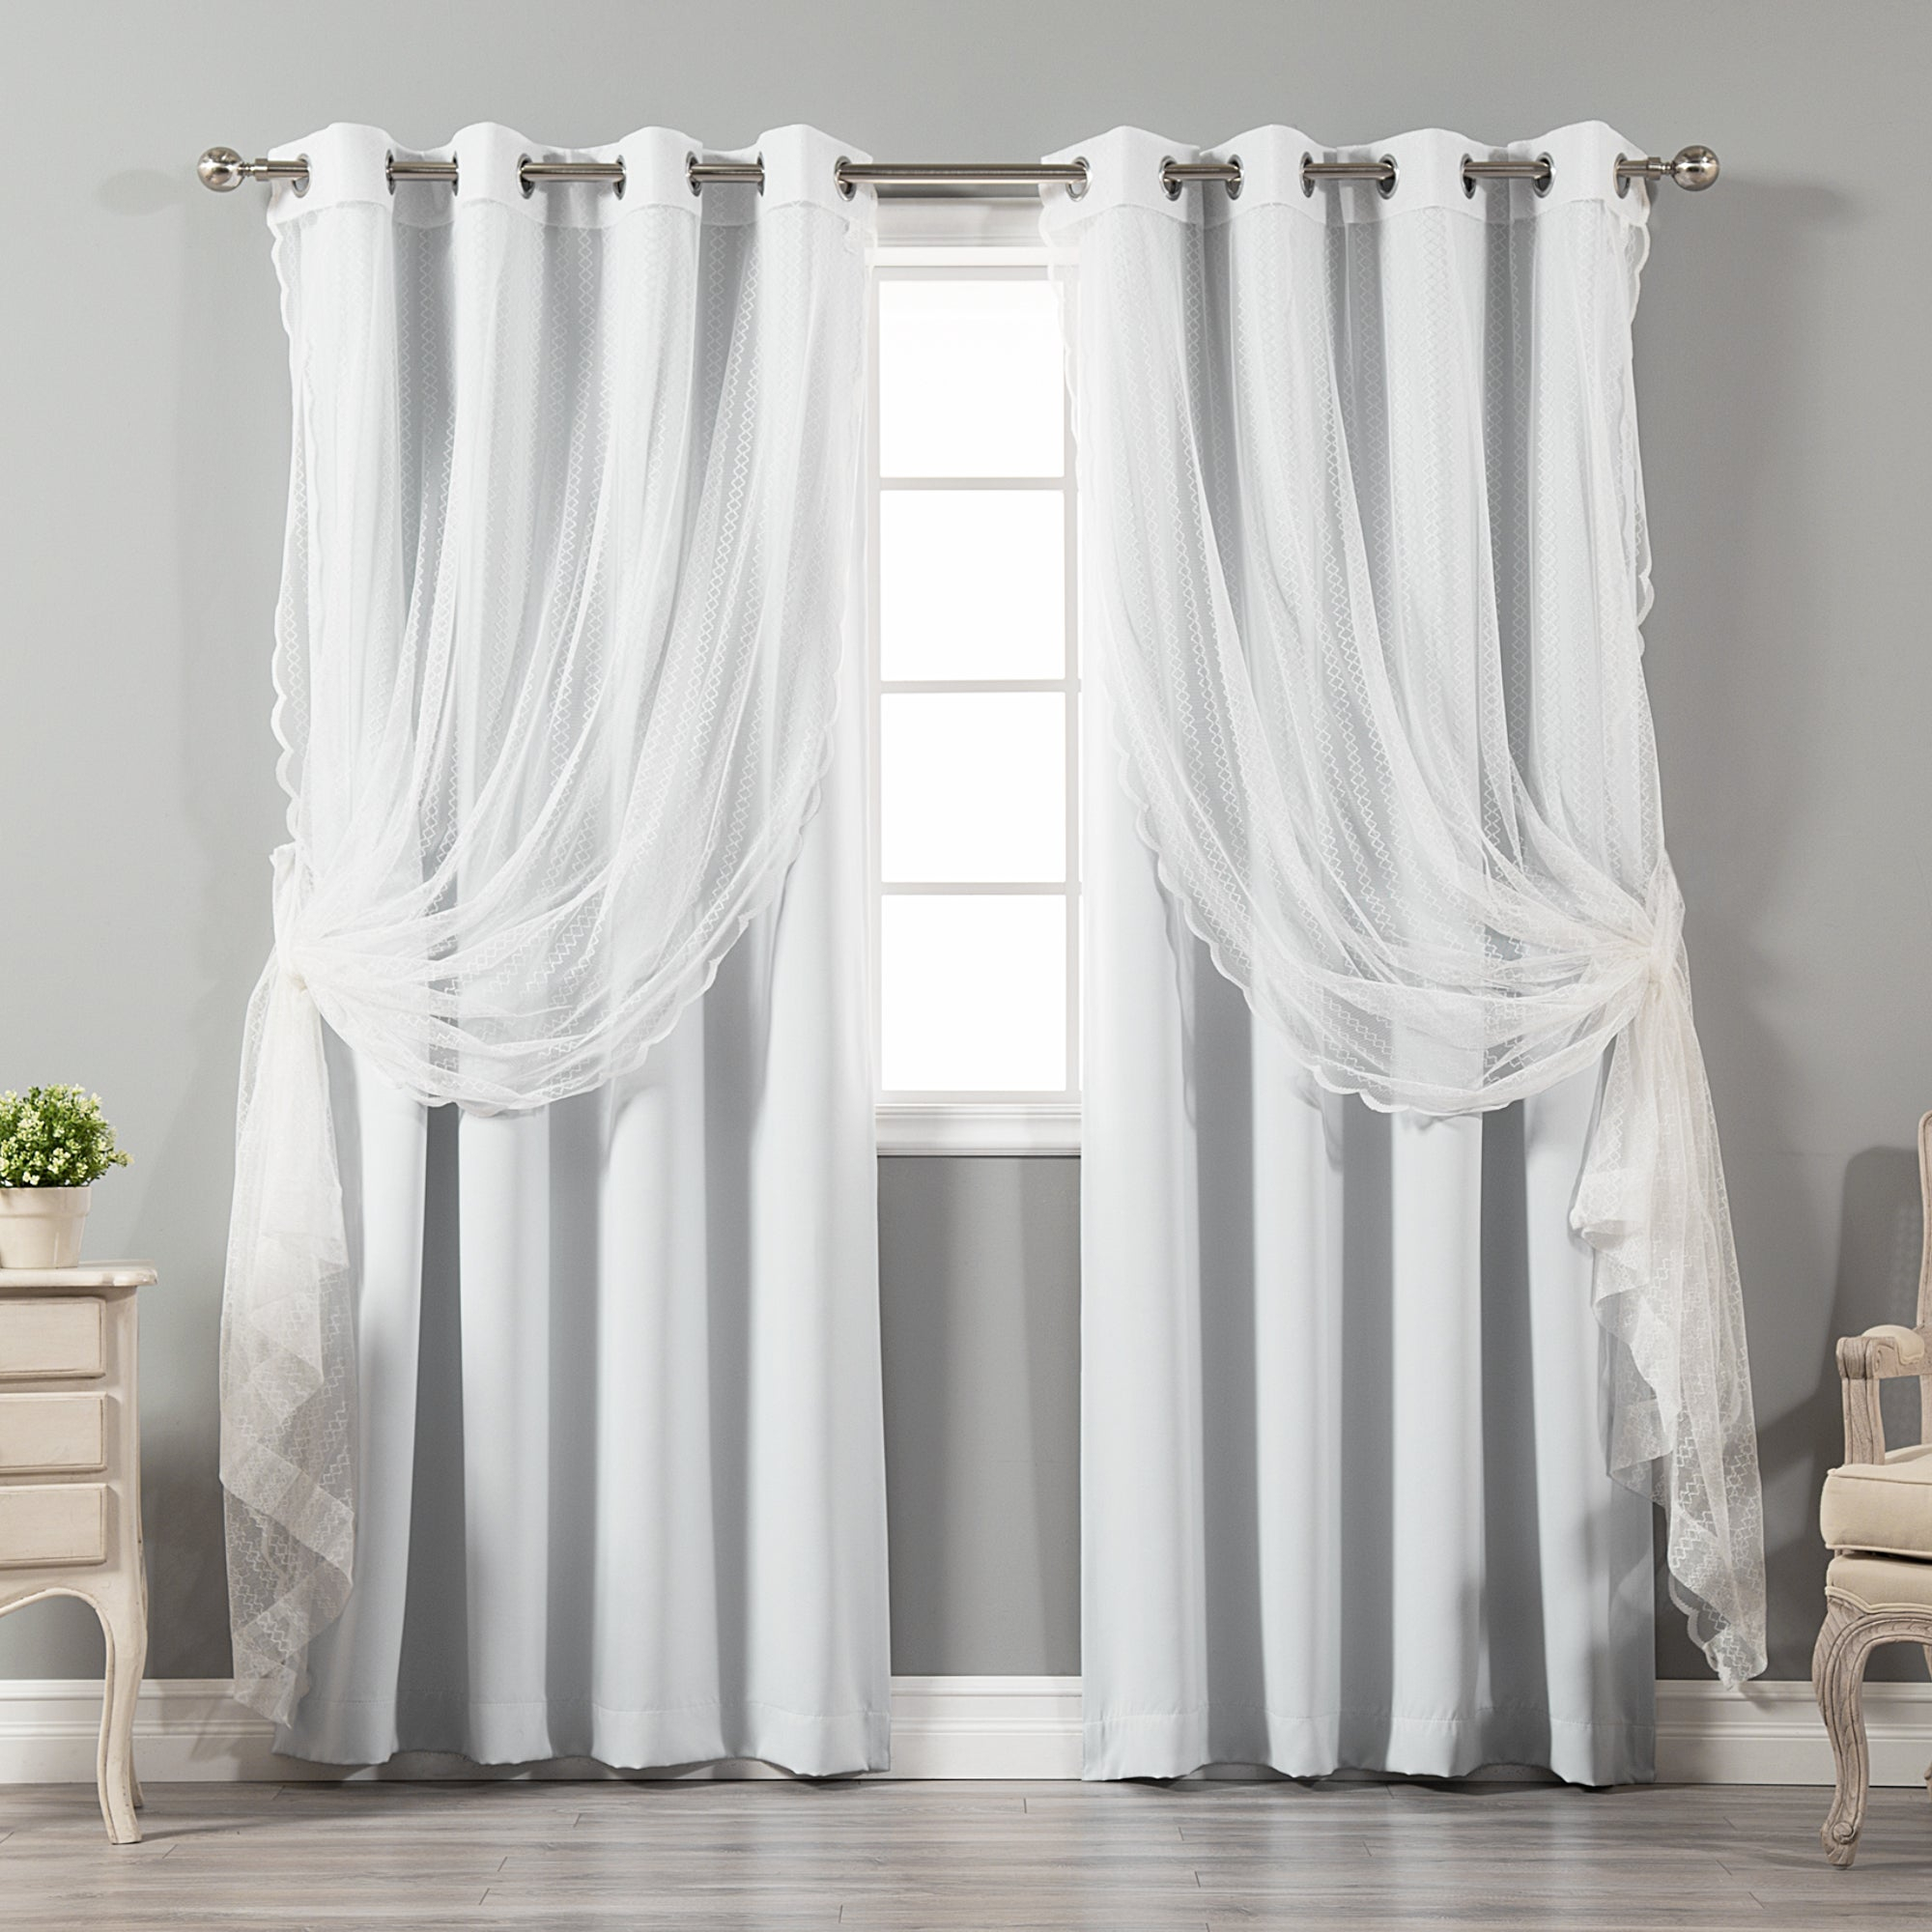 Aurora Home Mix & Match Blackout And Zigzag Lace 4 Piece Curtain Panel Set For Mix And Match Blackout Blackout Curtains Panel Sets (View 9 of 20)